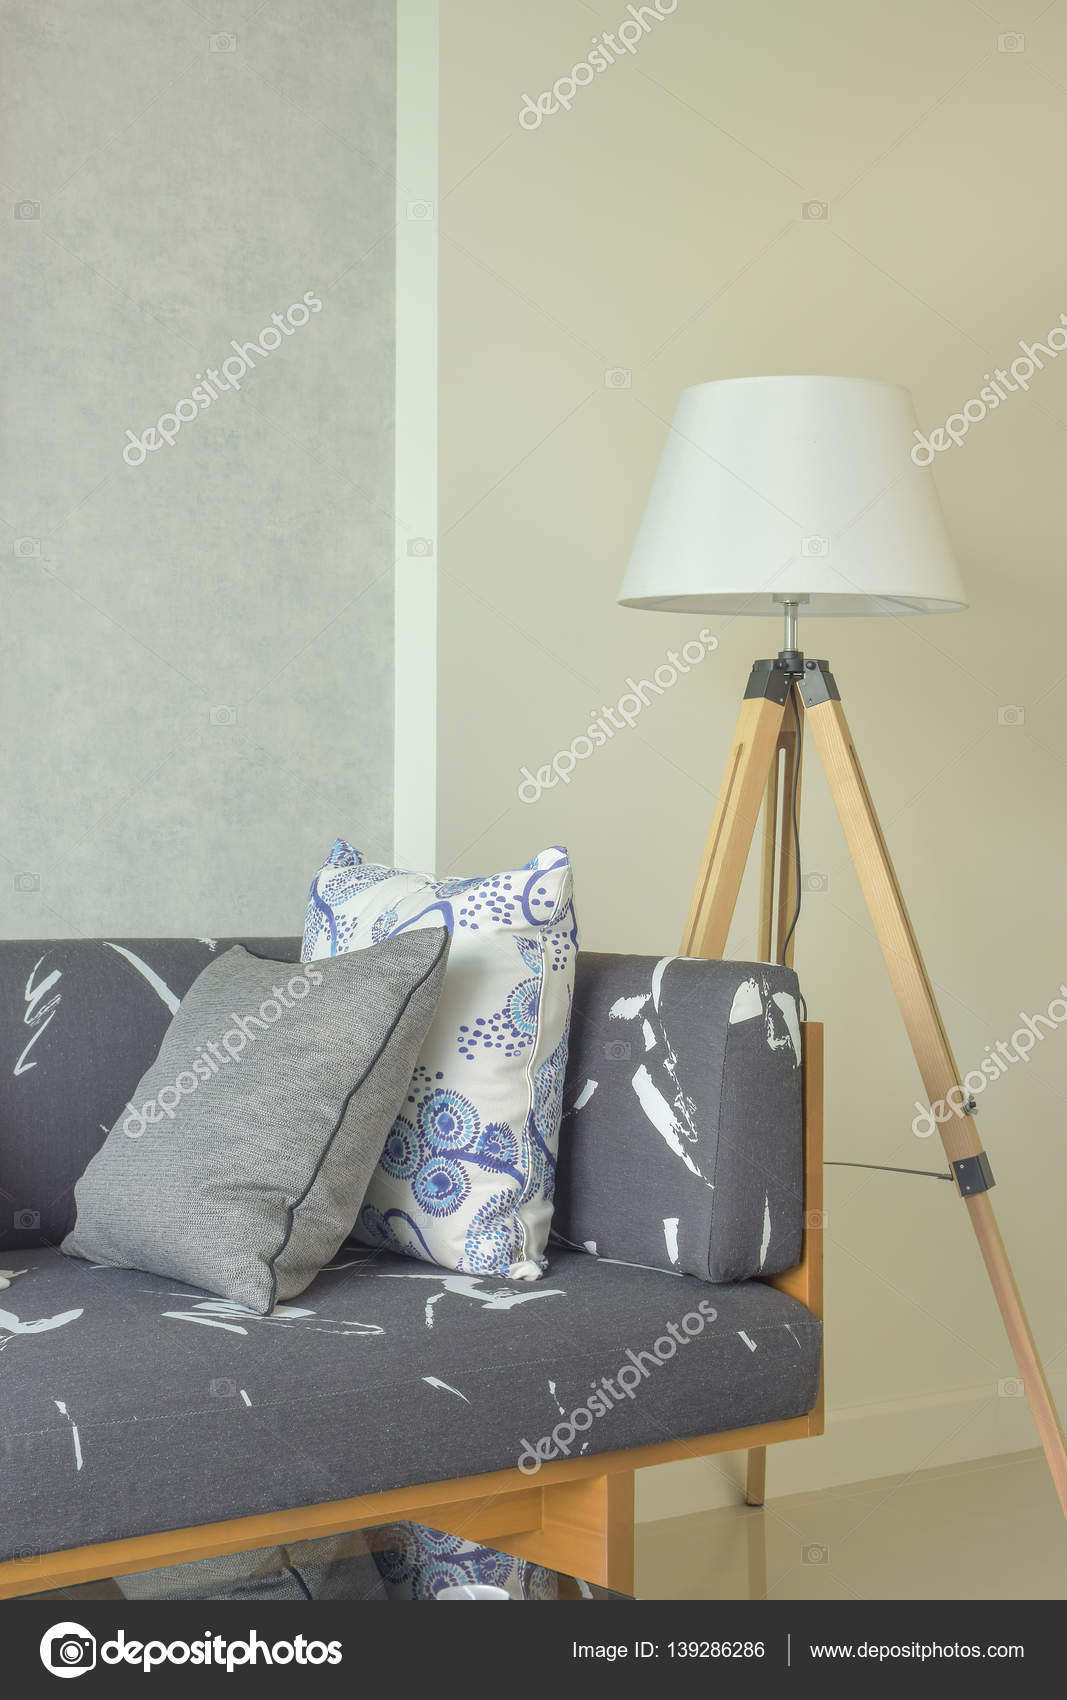 Wooden Base With Gray Upholstery Sofa And White Shade Wooden Floor Lamp Stock Photo C Worldwide Stock 139286286